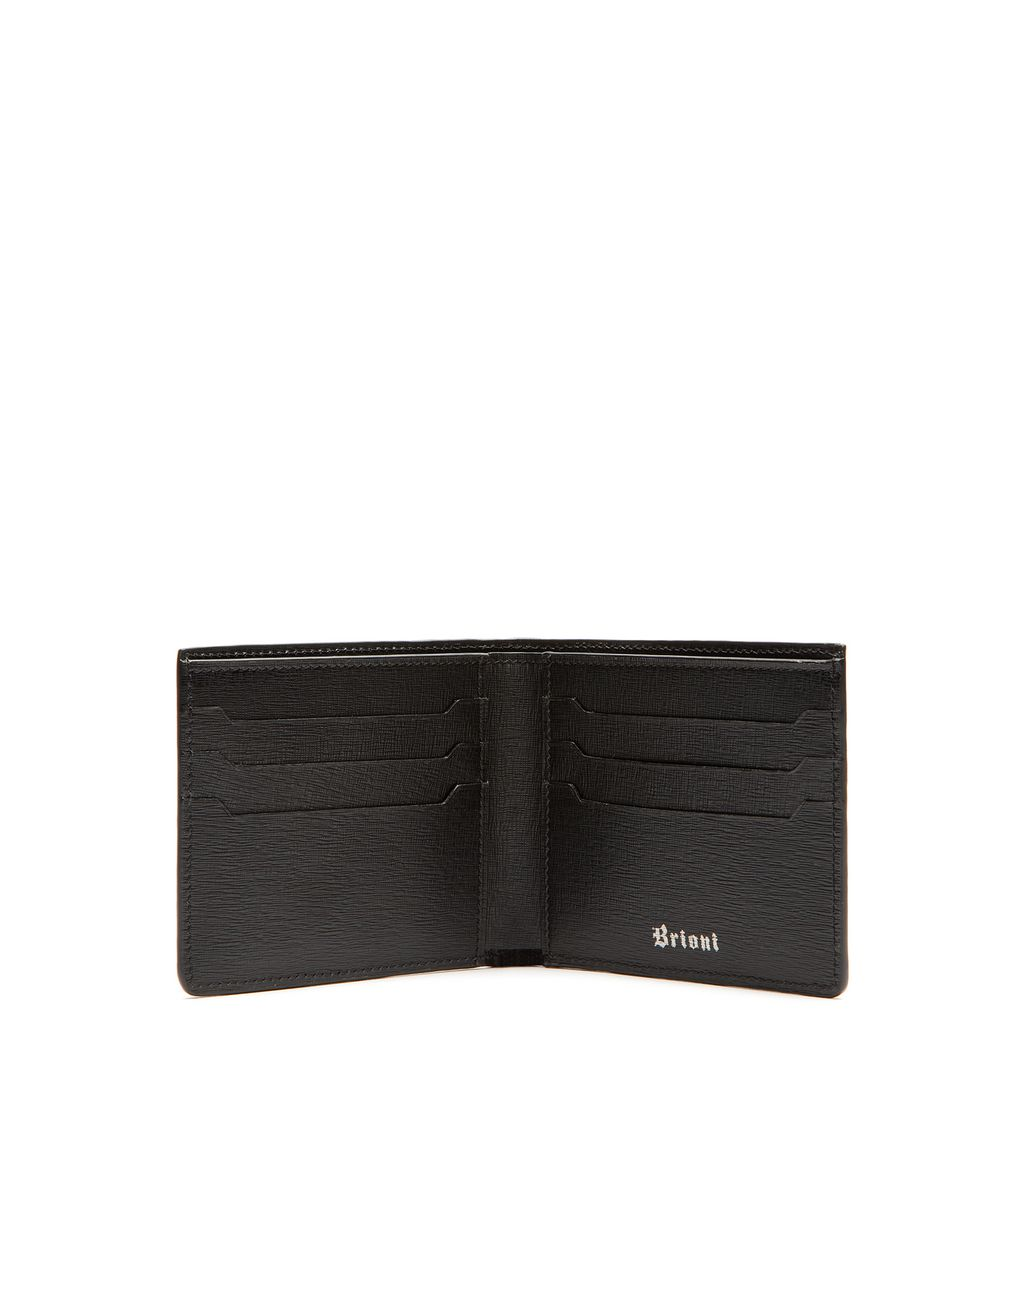 BRIONI Portafogli Slim in Alligatore Color Cognac Pelletteria [*** pickupInStoreShippingNotGuaranteed_info ***] d